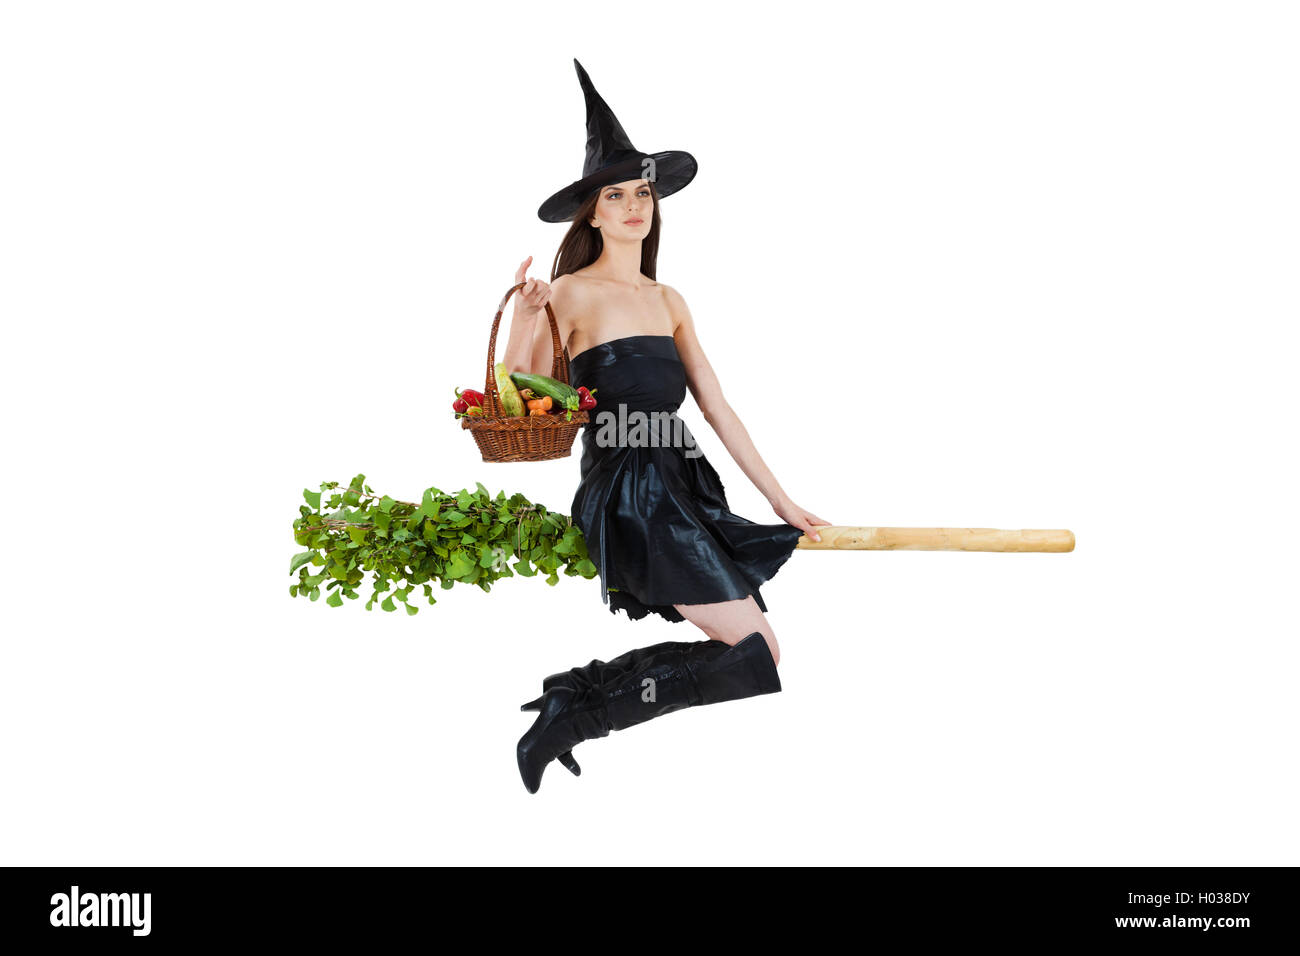 Young woman dressed as a witch carrying vegetable basket and riding a broom. White background. - Stock Image